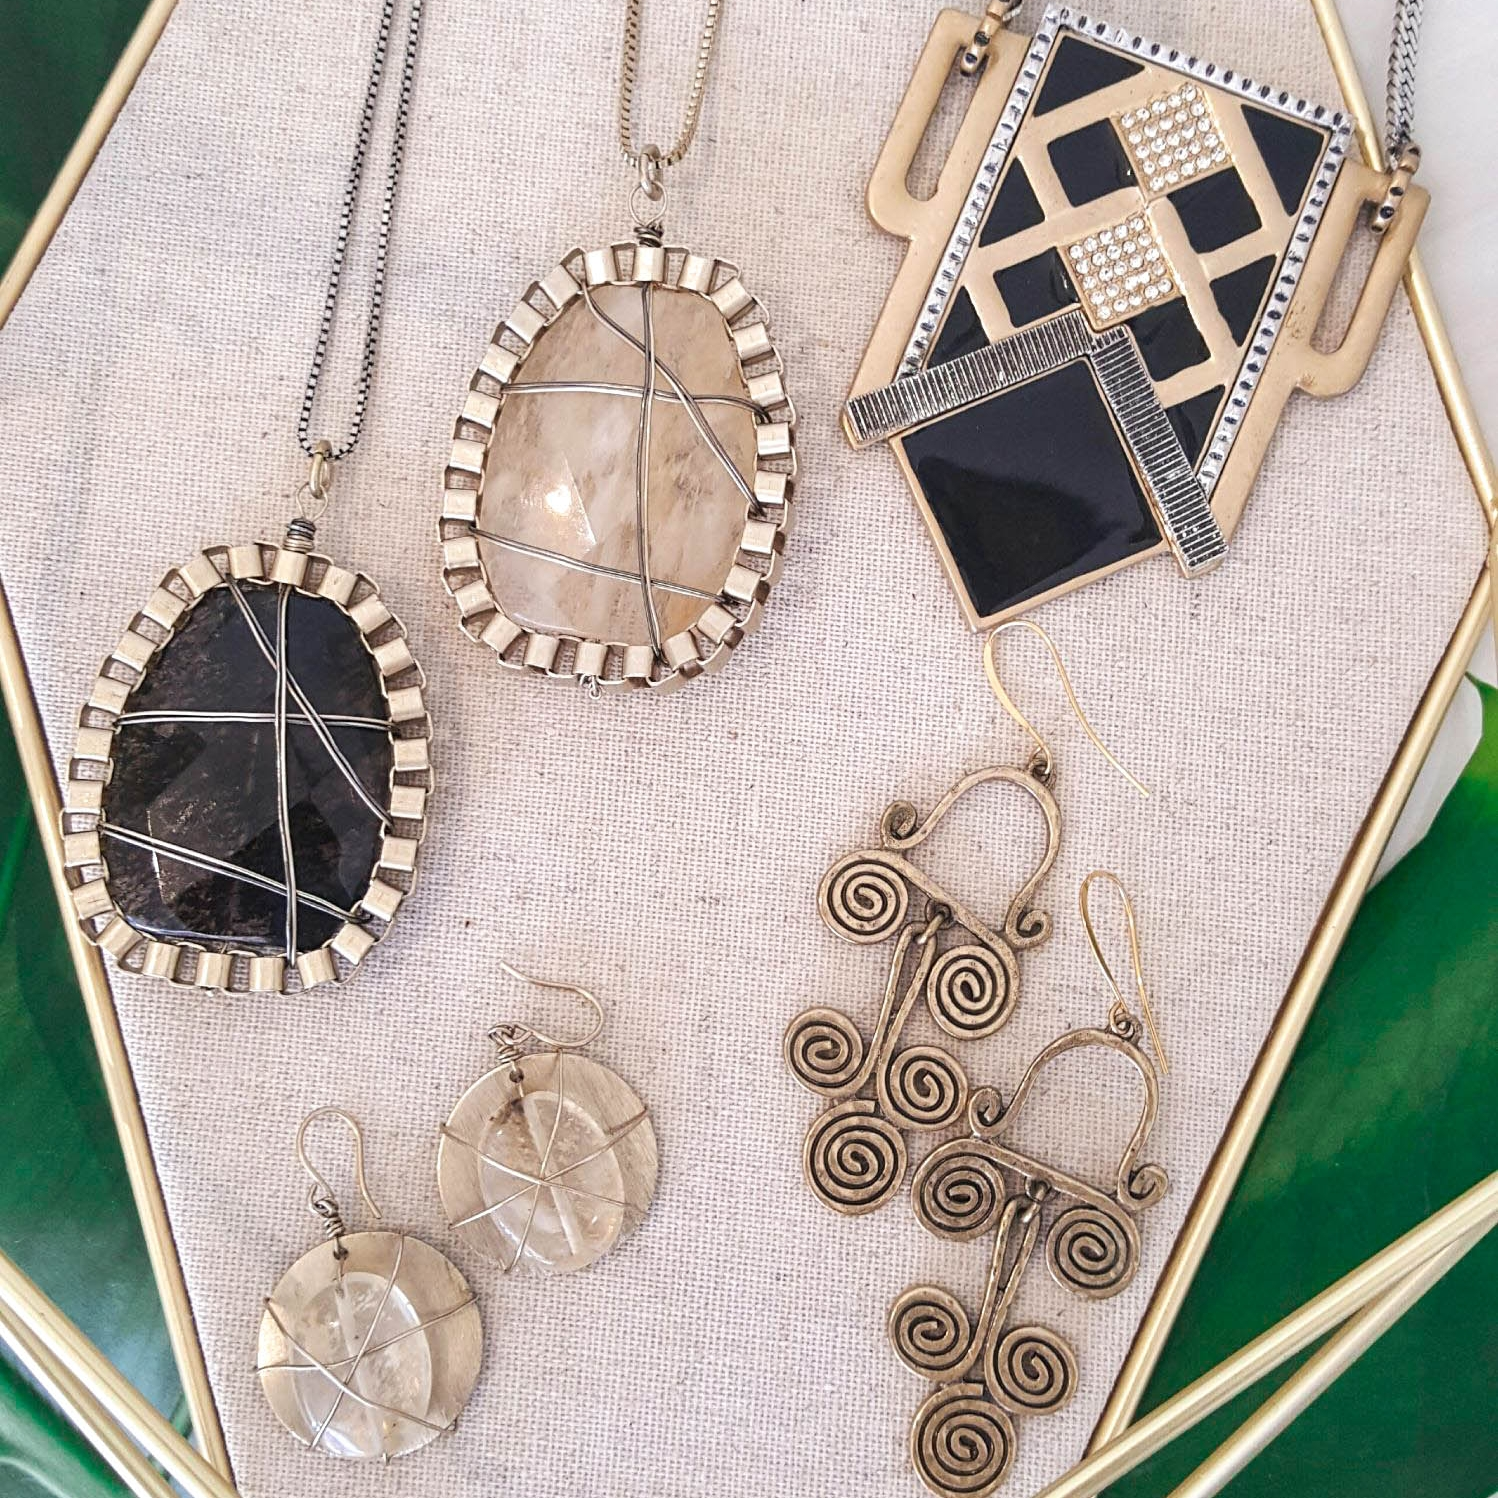 Cocoacentric statement necklaces and earrings